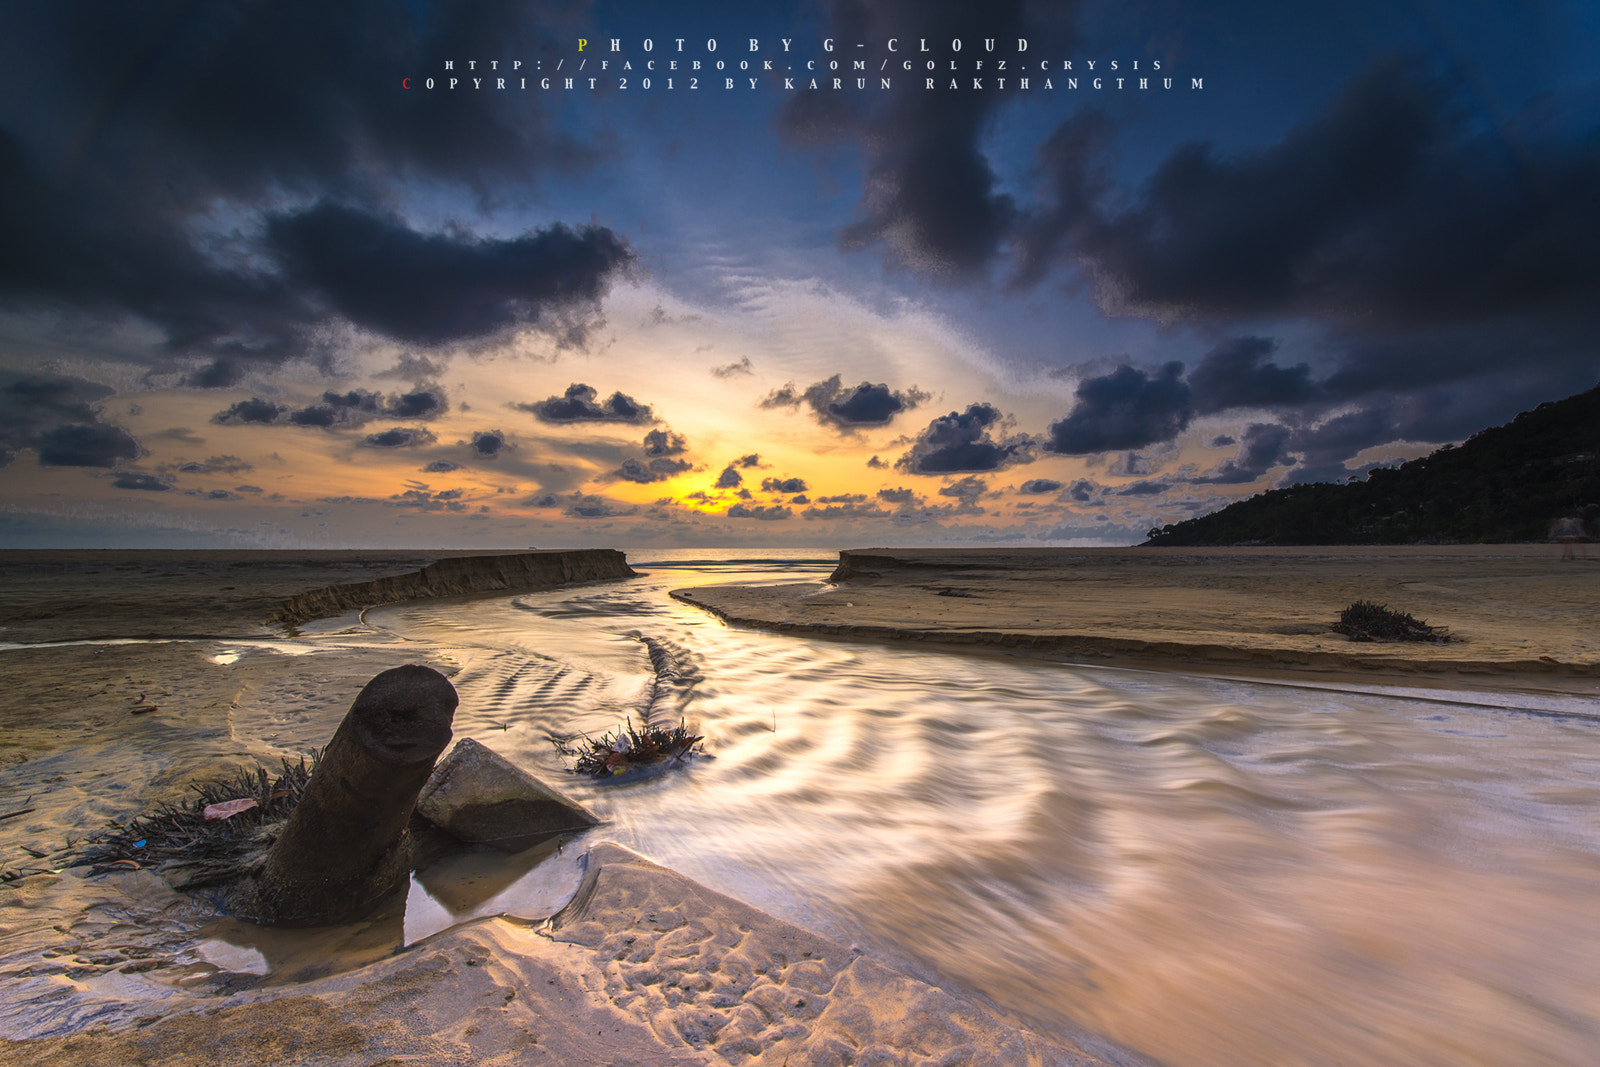 Photograph Sea Walking by Golfzx Cloud on 500px